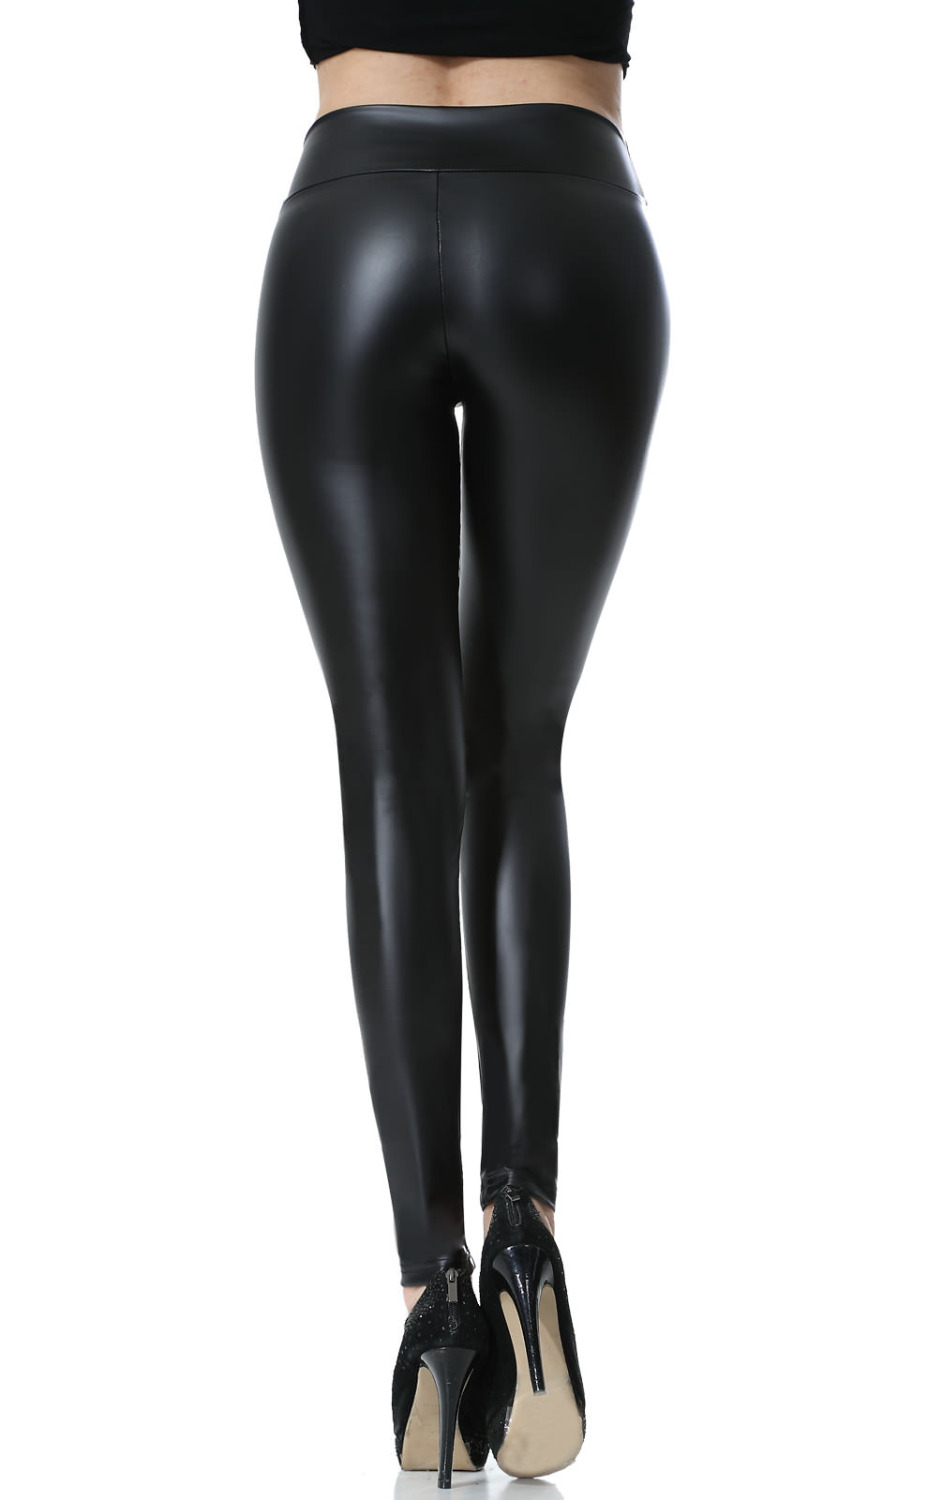 Everbellus Fitness Leather Leggings For Women Black Brillant Femme Fitness Mid Waisted Leather Leggings Sexy Push Up Slim Pants